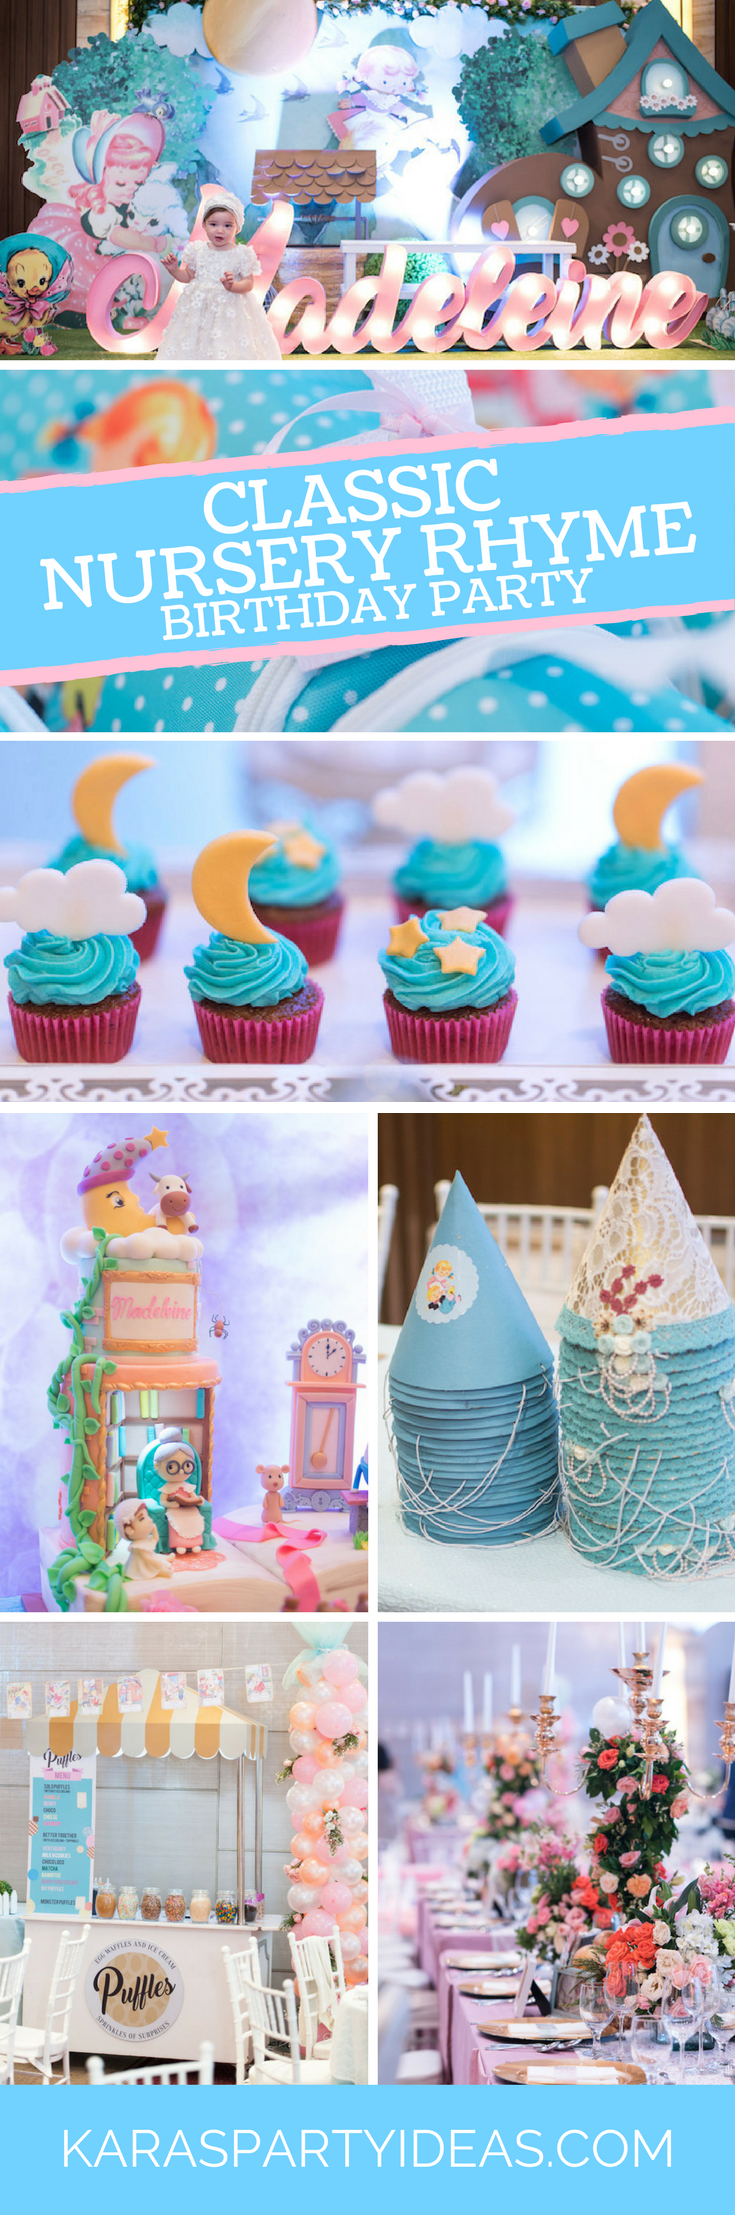 Kara S Party Ideas Classic Nursery Rhyme Birthday Party Kara S Party Ideas